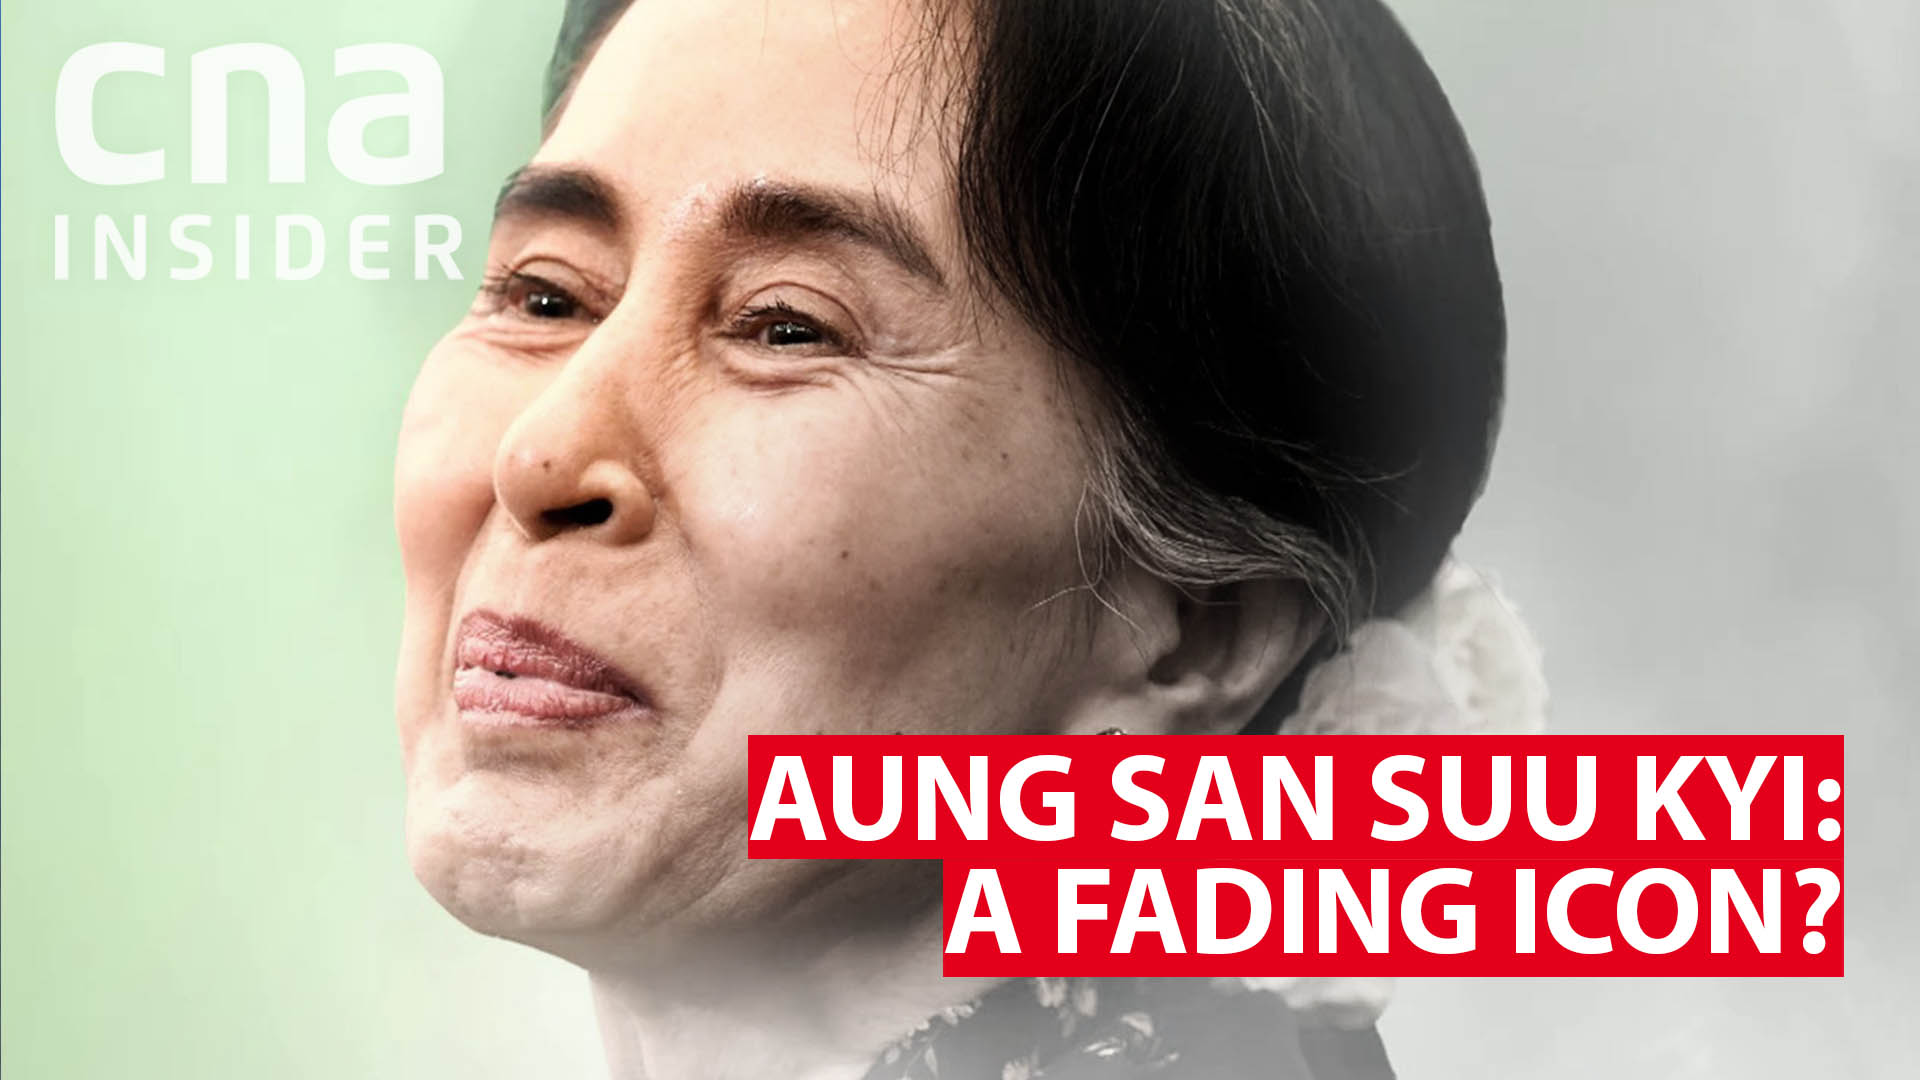 Is Aung San Suu Kyi a fading icon?